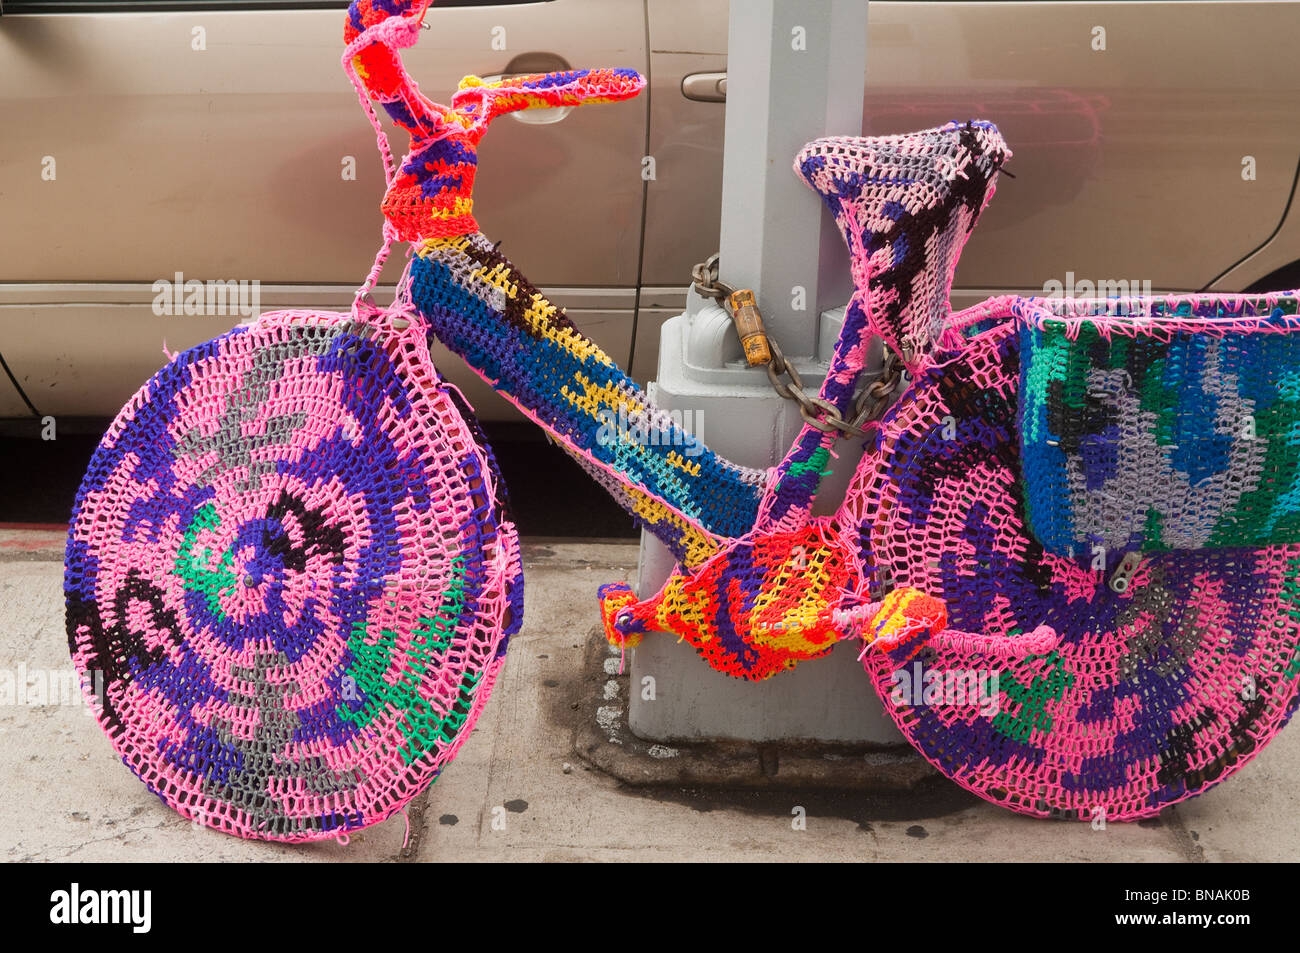 Knitted Bike - Stock Image